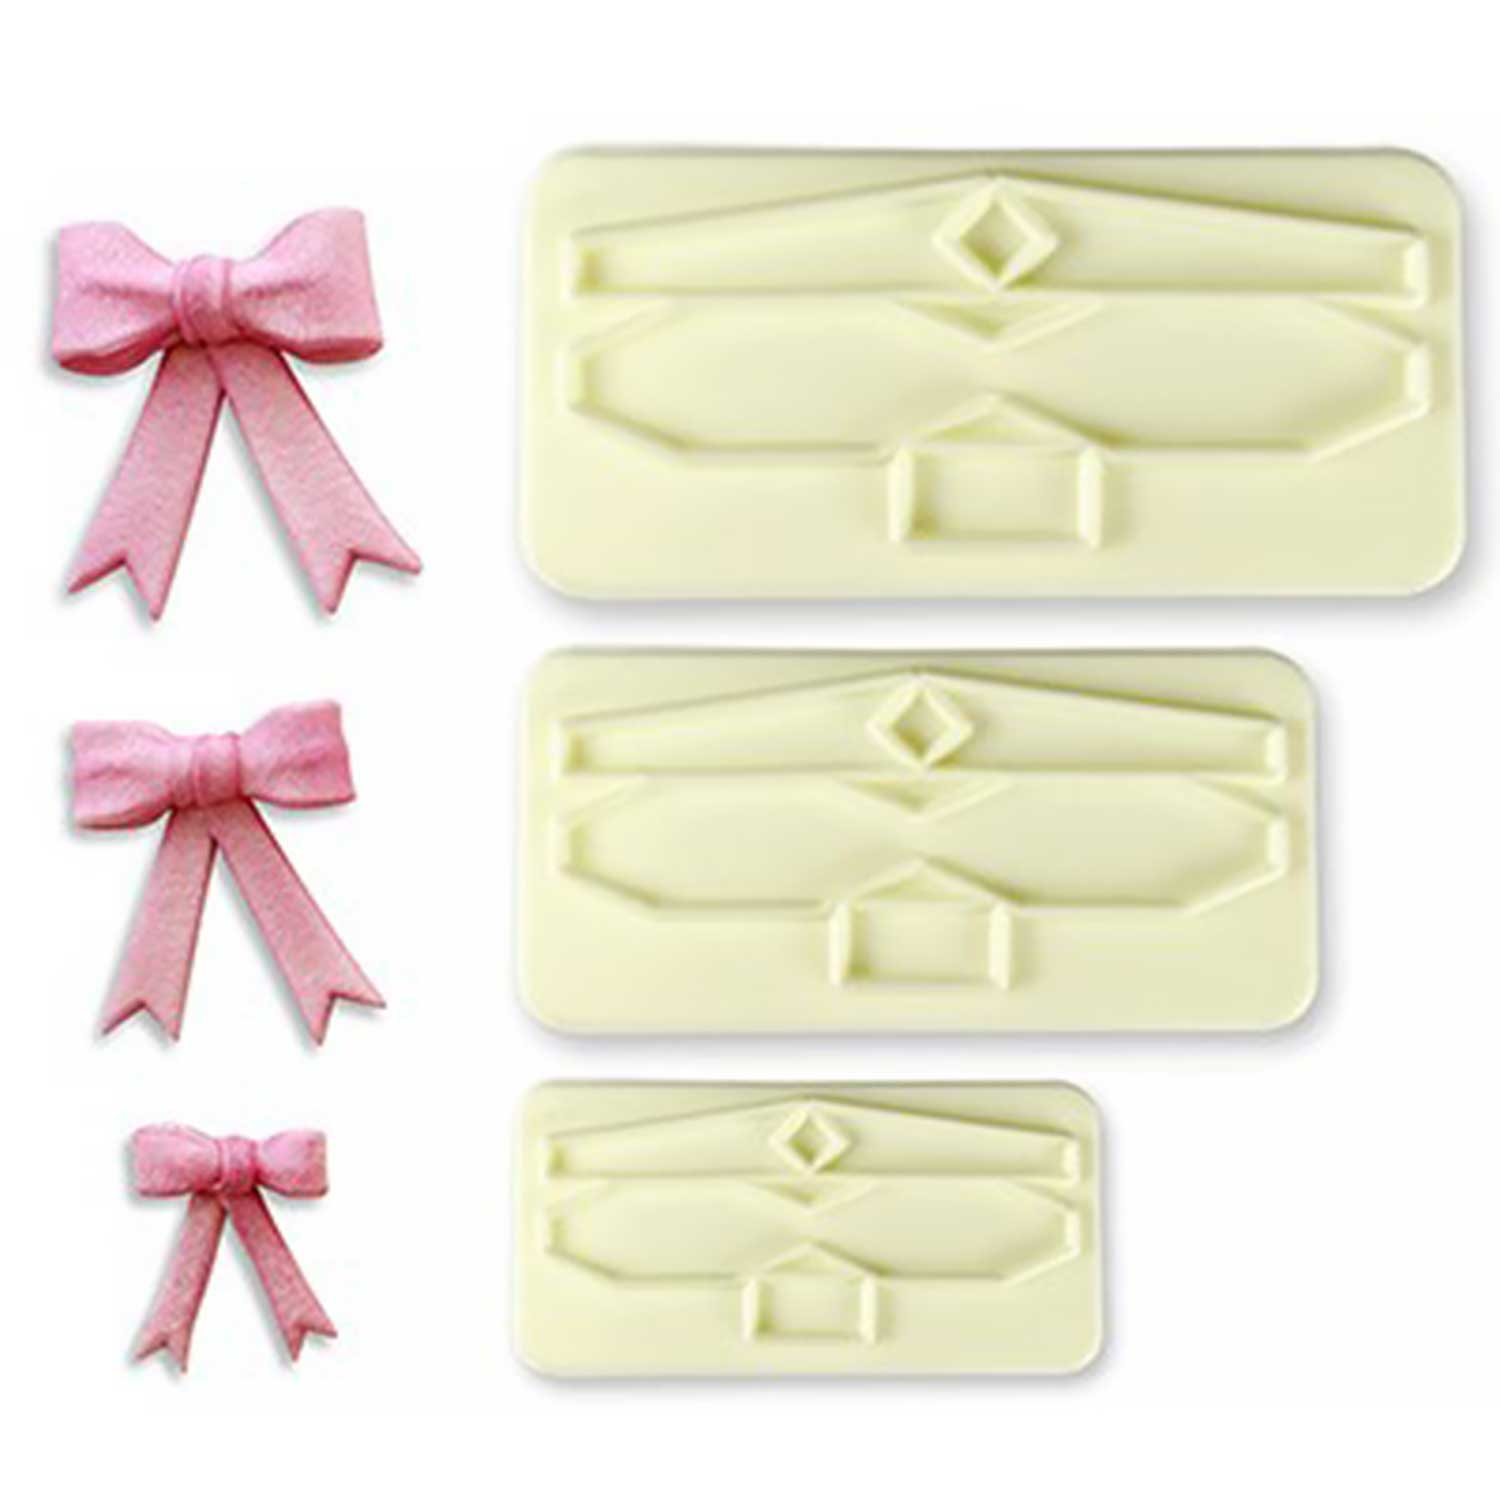 Gumpaste Cutter-Bow Set-Sizes 1, 2, 3